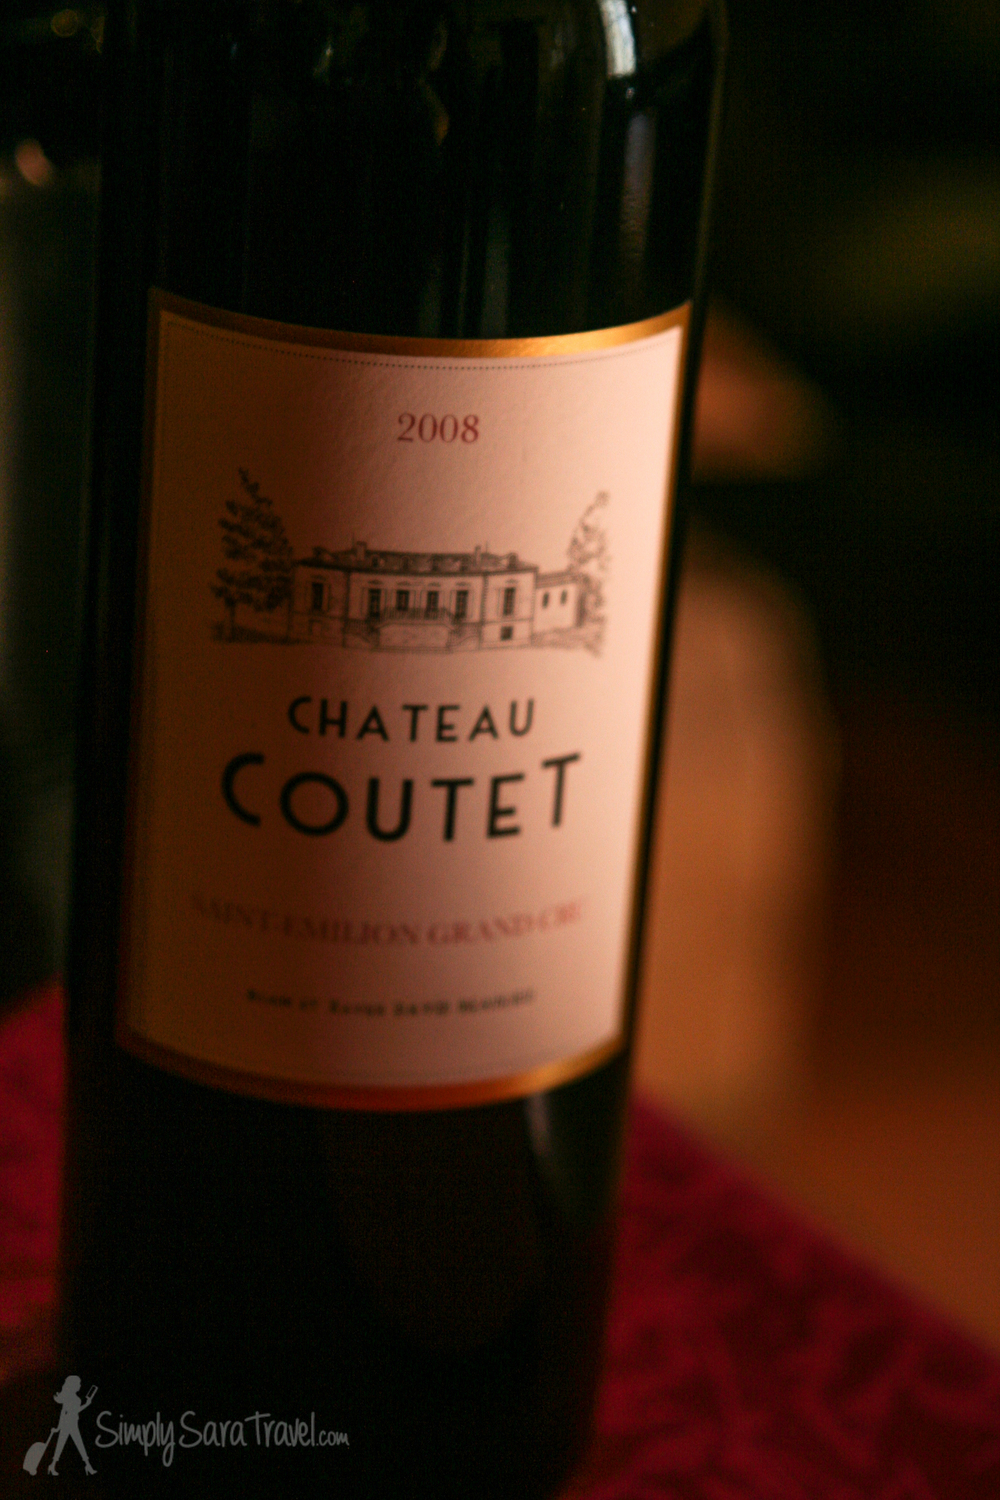 Bottle of 2008 Saint-Emilion Grand Cru red wine from Chateau Coutet, France